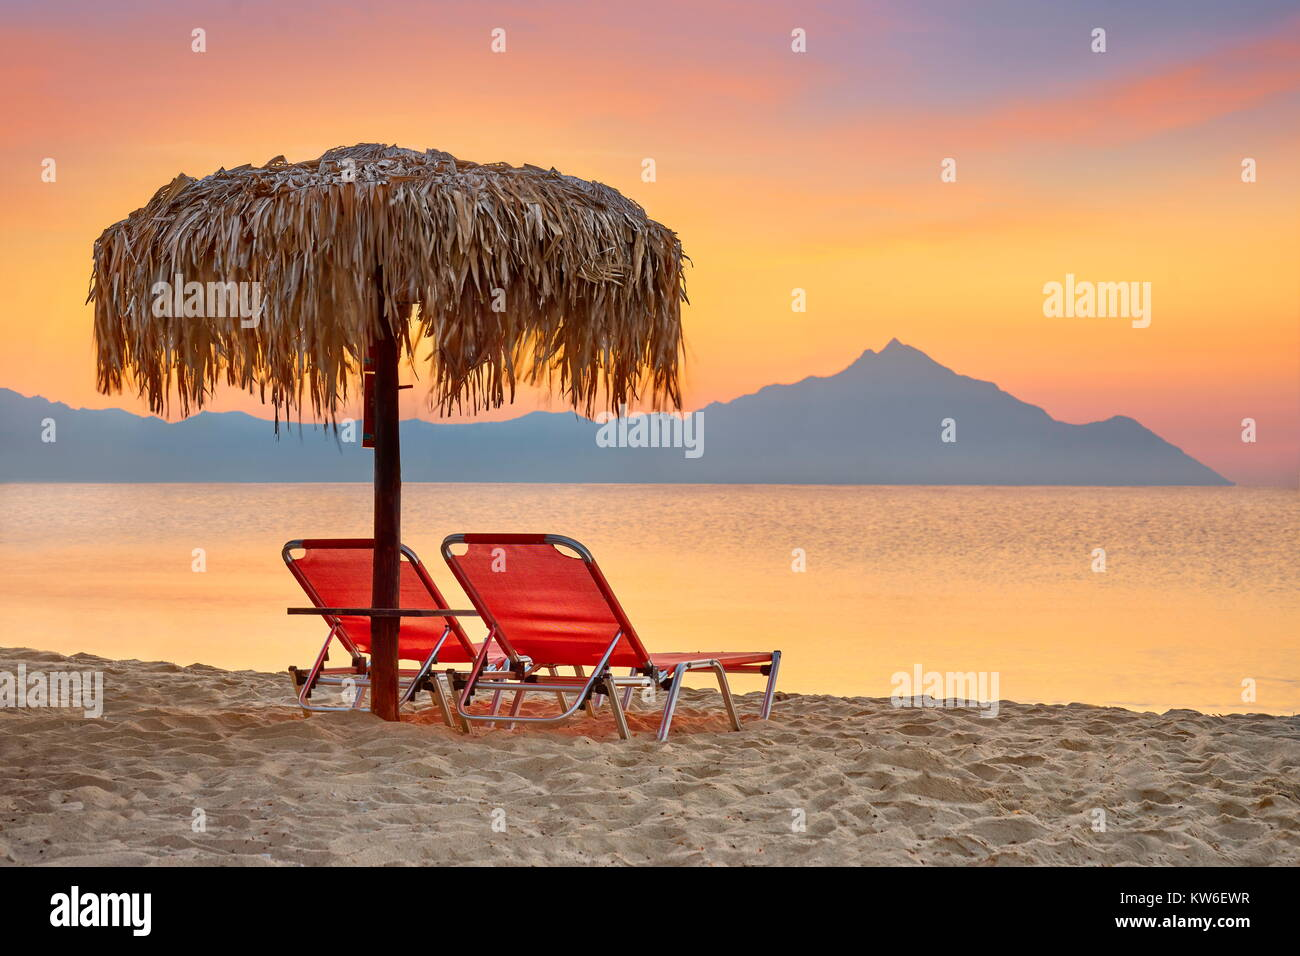 Halkidiki (or Chalkidiki) beach before sunrise, Mount Athos in the background, Greece - Stock Image